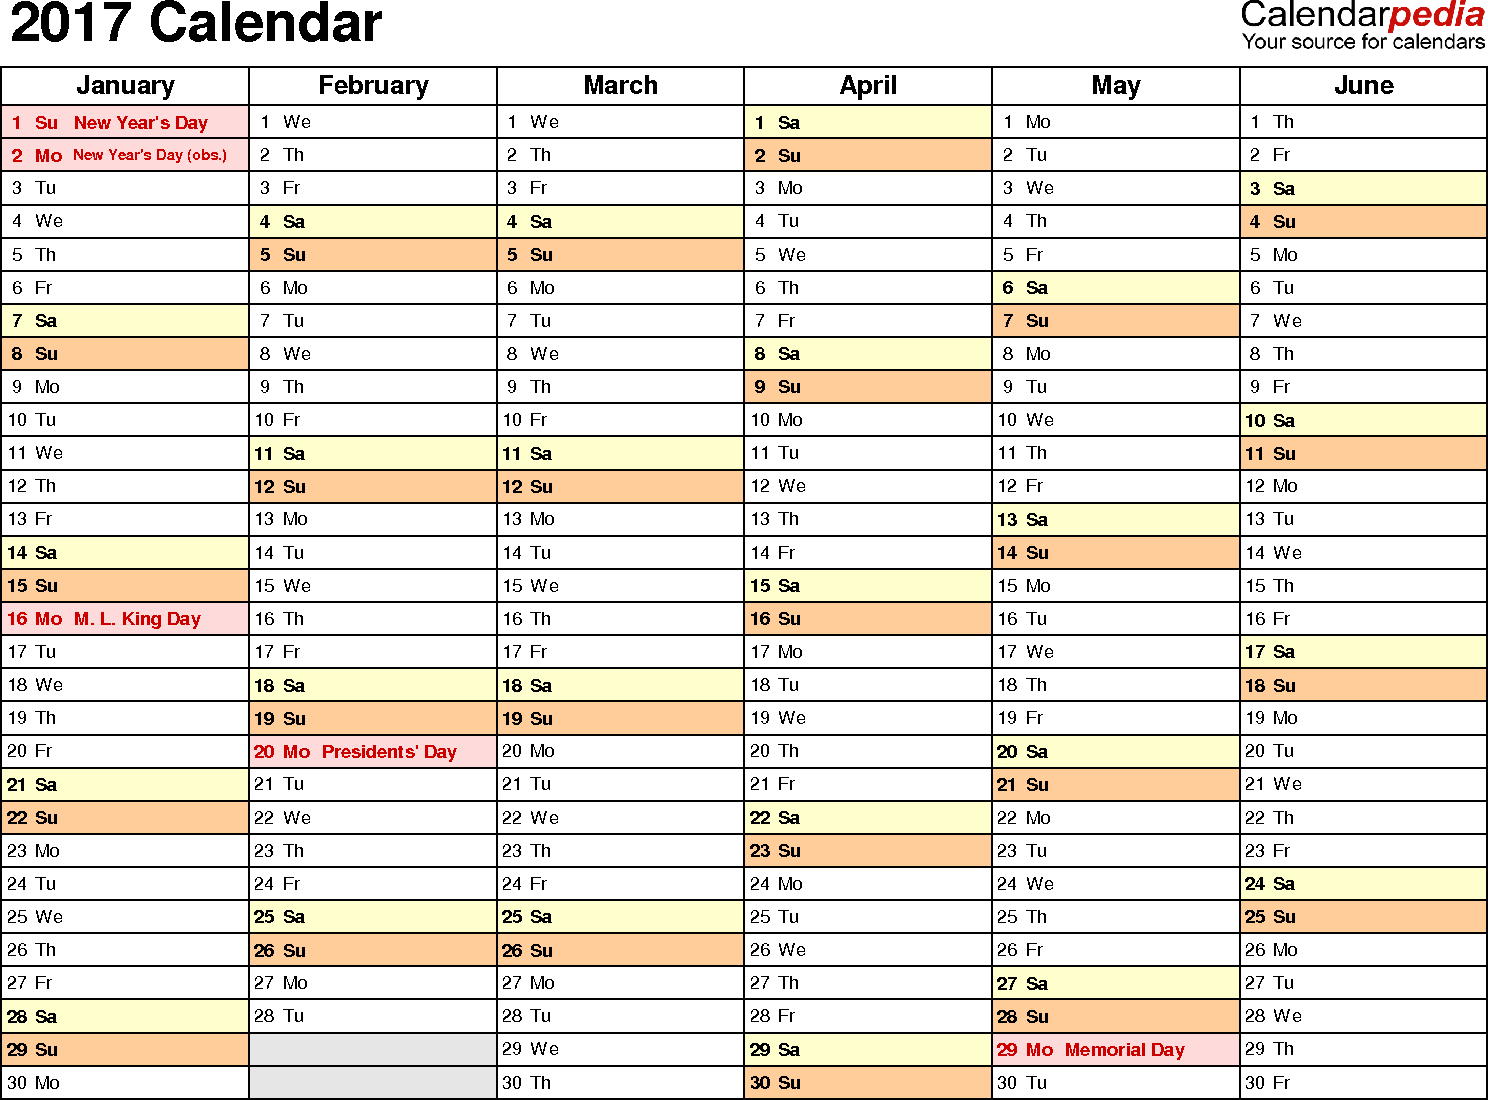 Ediblewildsus  Splendid  Calendar  Download  Free Printable Excel Templates Xls With Licious Template   Calendar For Excel Months Horizontally  Pages Landscape Orientation With Beauteous Checkbox In Excel Also Find And Replace In Excel In Addition How To Concatenate In Excel And Excel Developer Tab As Well As Creating Drop Down List In Excel Additionally Excel Finance From Calendarpediacom With Ediblewildsus  Licious  Calendar  Download  Free Printable Excel Templates Xls With Beauteous Template   Calendar For Excel Months Horizontally  Pages Landscape Orientation And Splendid Checkbox In Excel Also Find And Replace In Excel In Addition How To Concatenate In Excel From Calendarpediacom